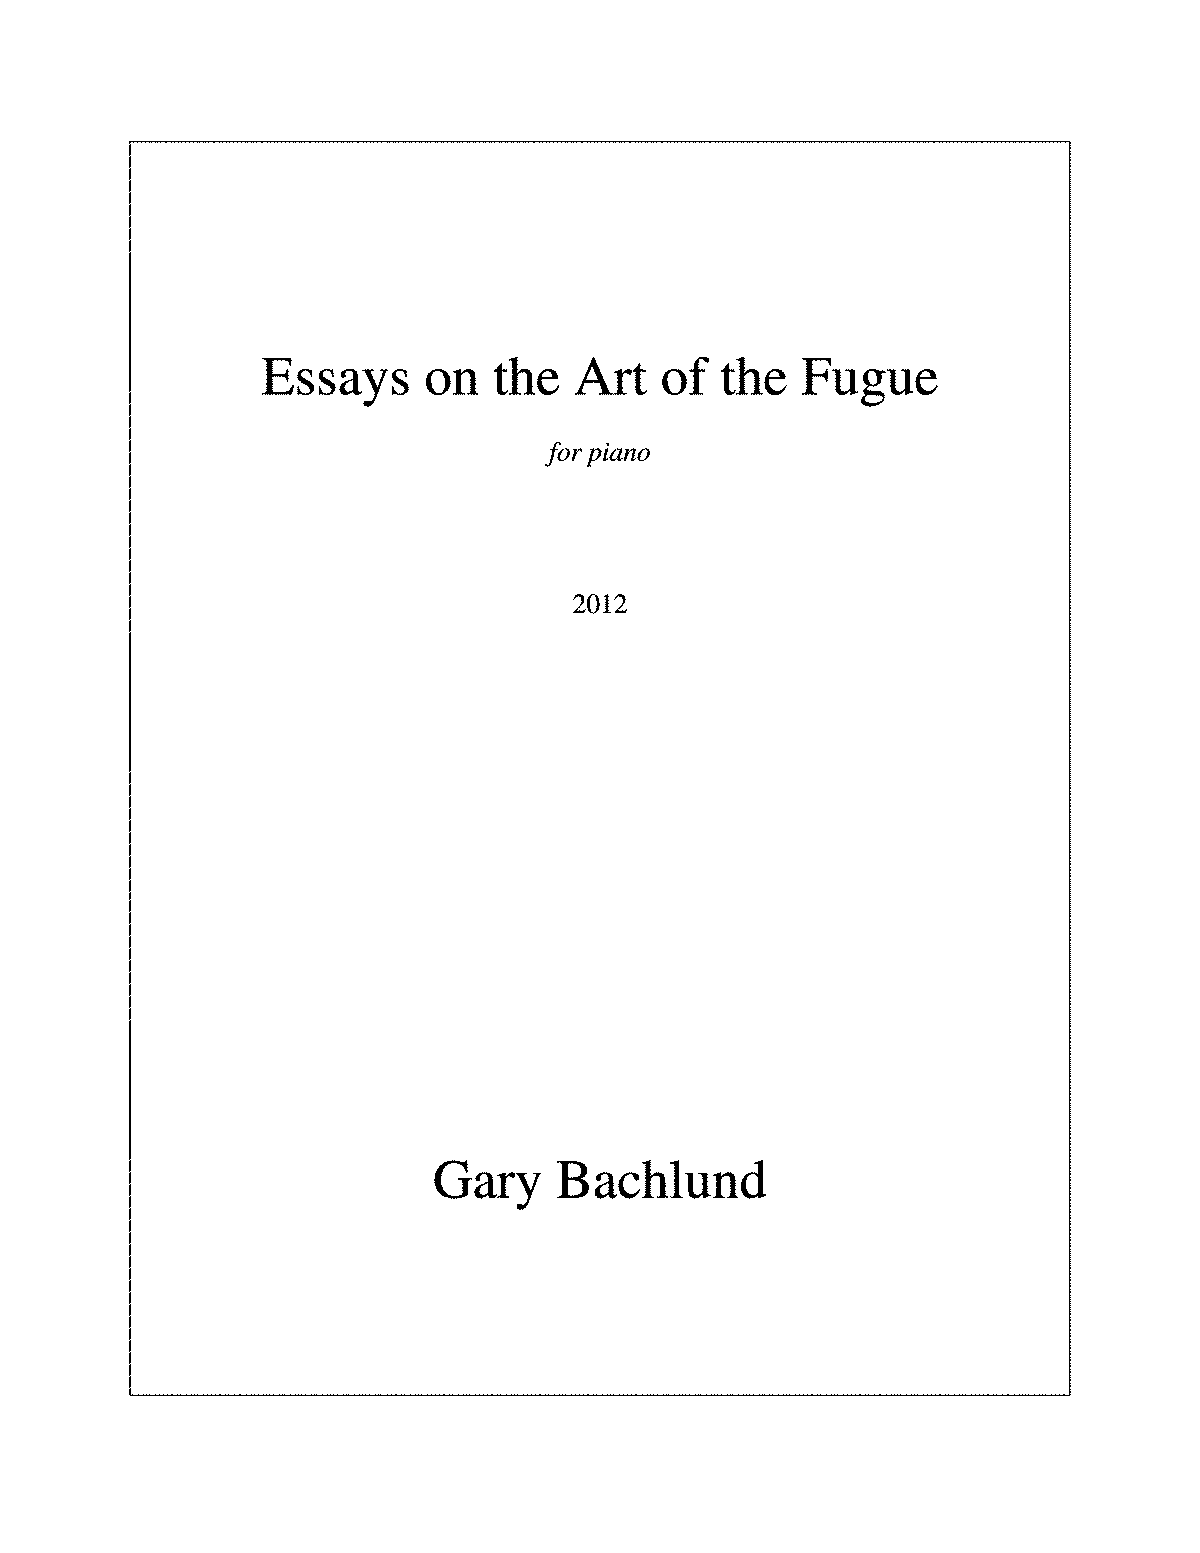 essays on the art of the fugue bachlund gary petrucci essays on the art of the fugue bachlund gary petrucci music library public sheet music